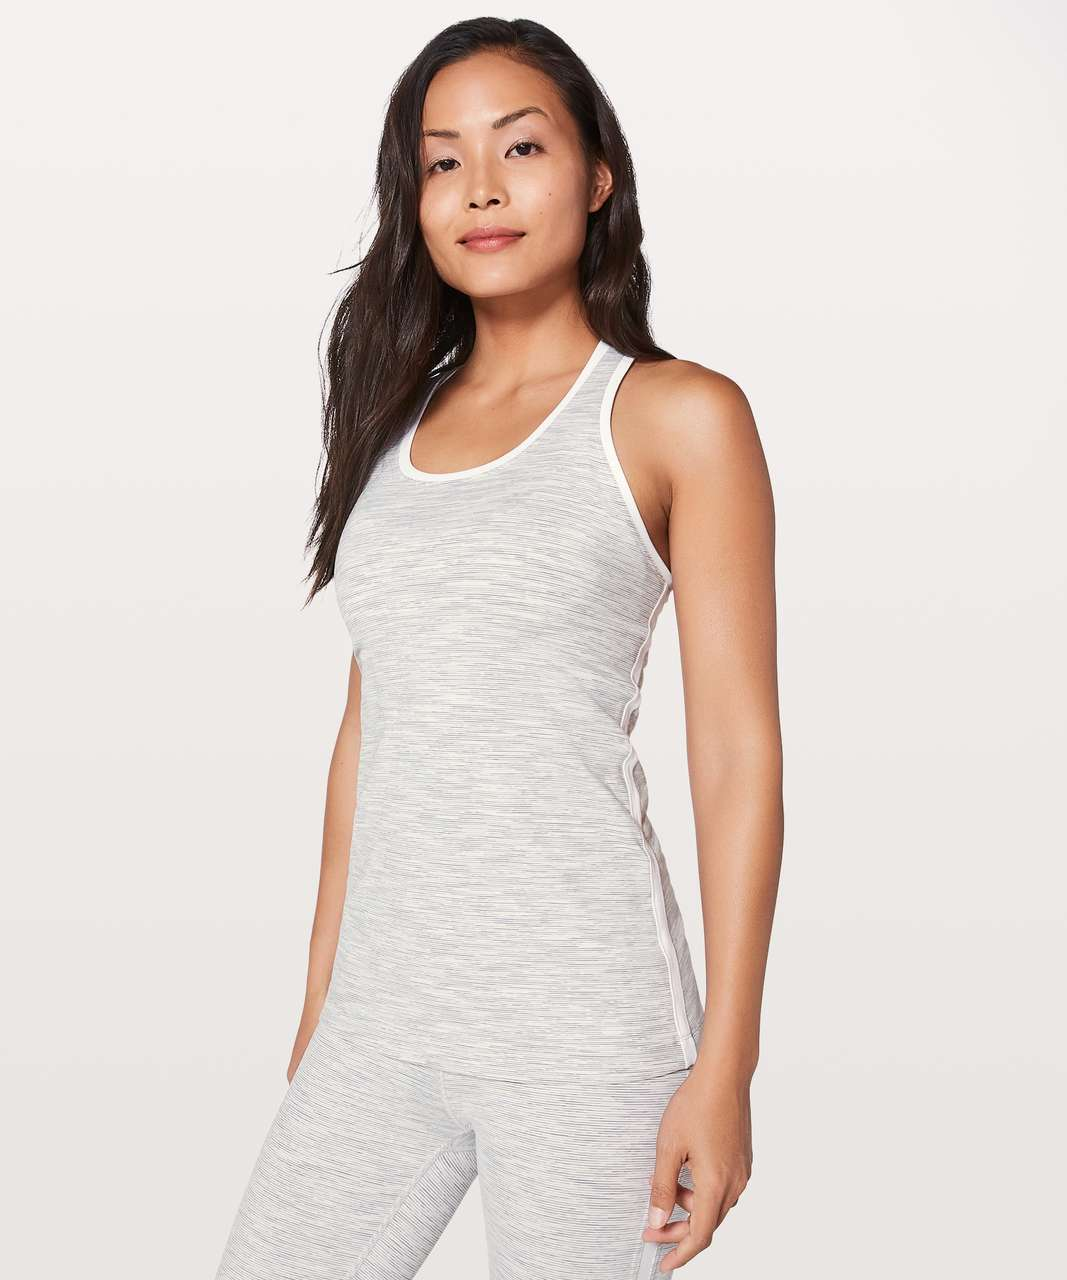 Lululemon Cool Racerback II Lined Up - Wee Are From Space Nimbus Battleship / White